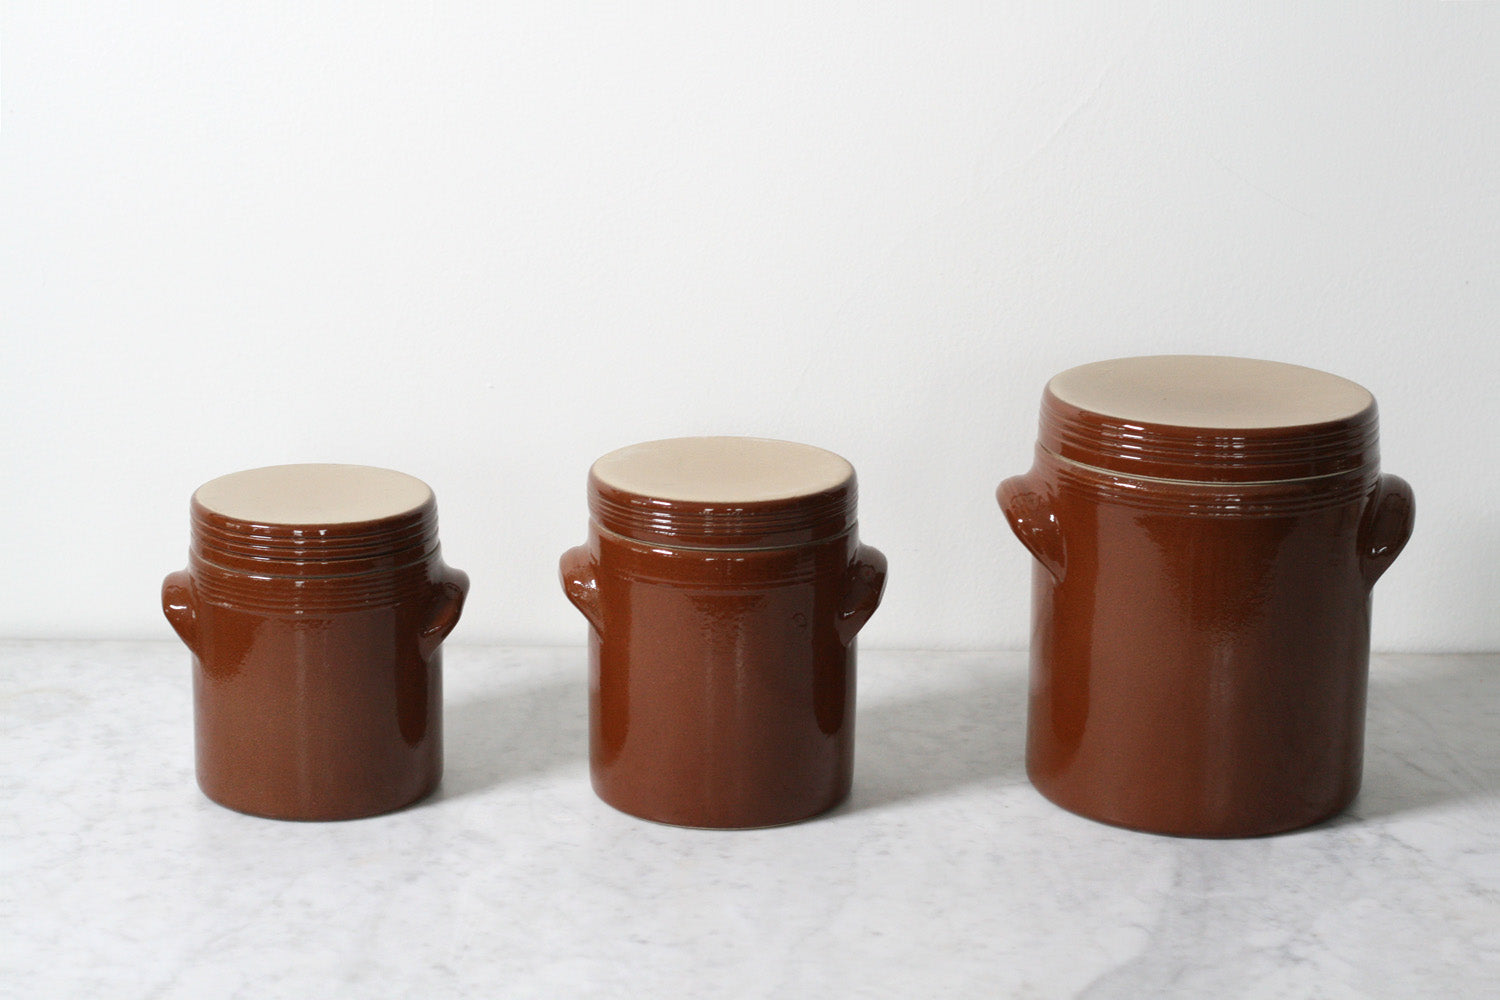 Poterie Renault French Stoneware Storage Jars